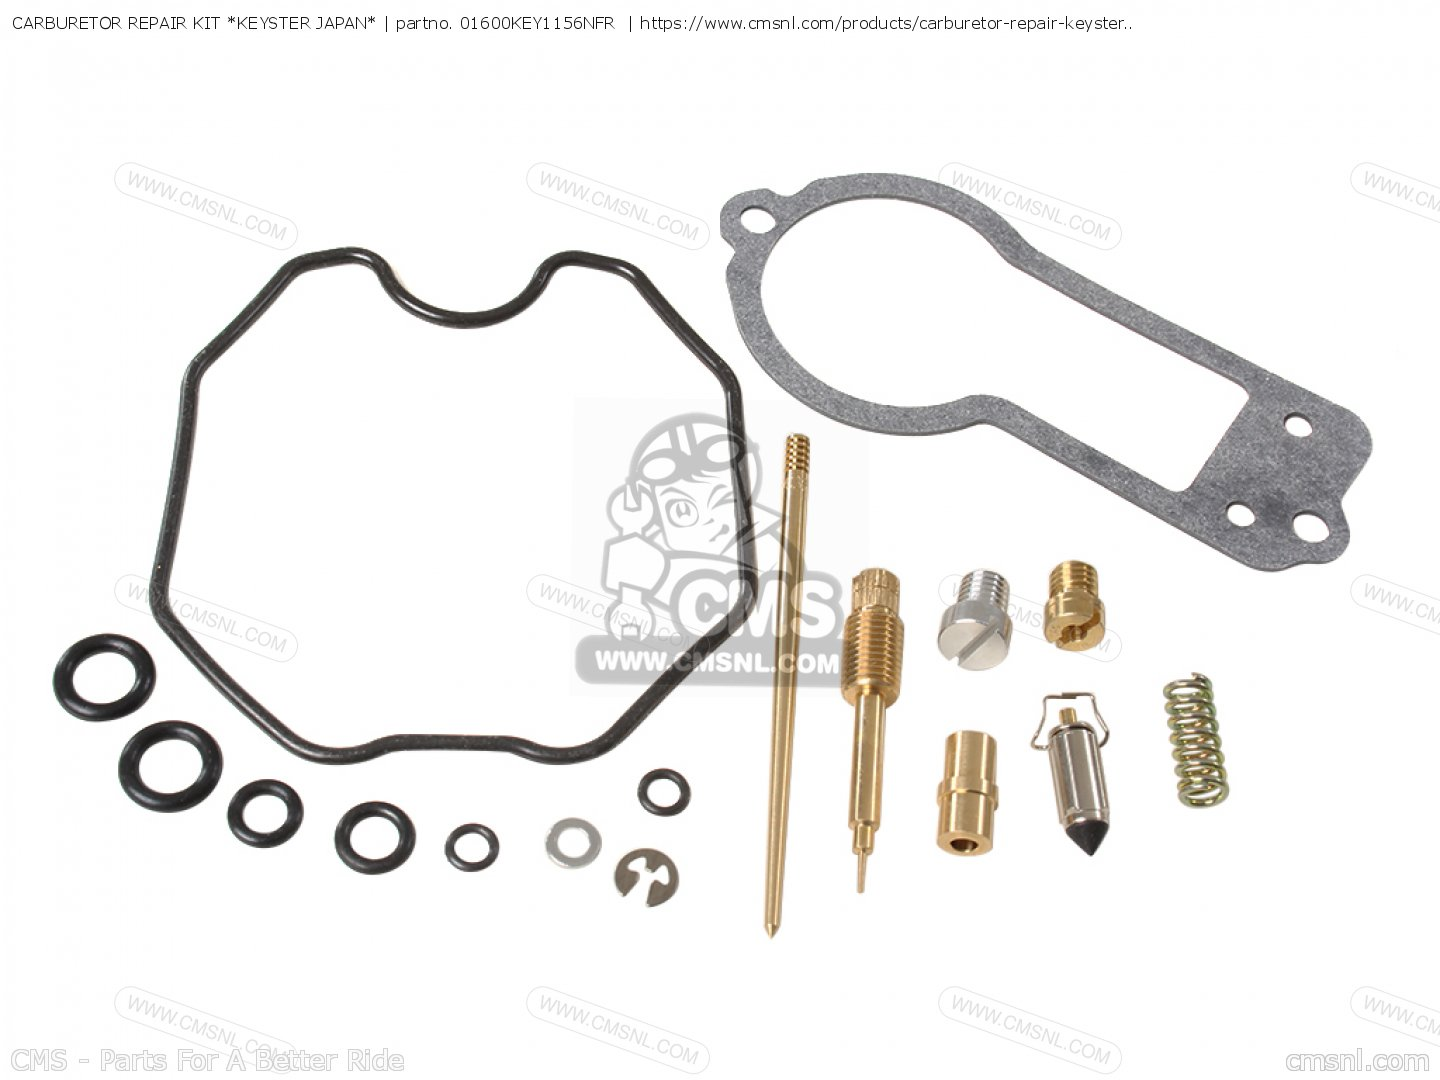 P796447 in addition Parts besides Camshaft Crankshaft Piston Rings Connecting Rod additionally Cat16 also P 0900c152801ce5fd. on engine overhaul kits